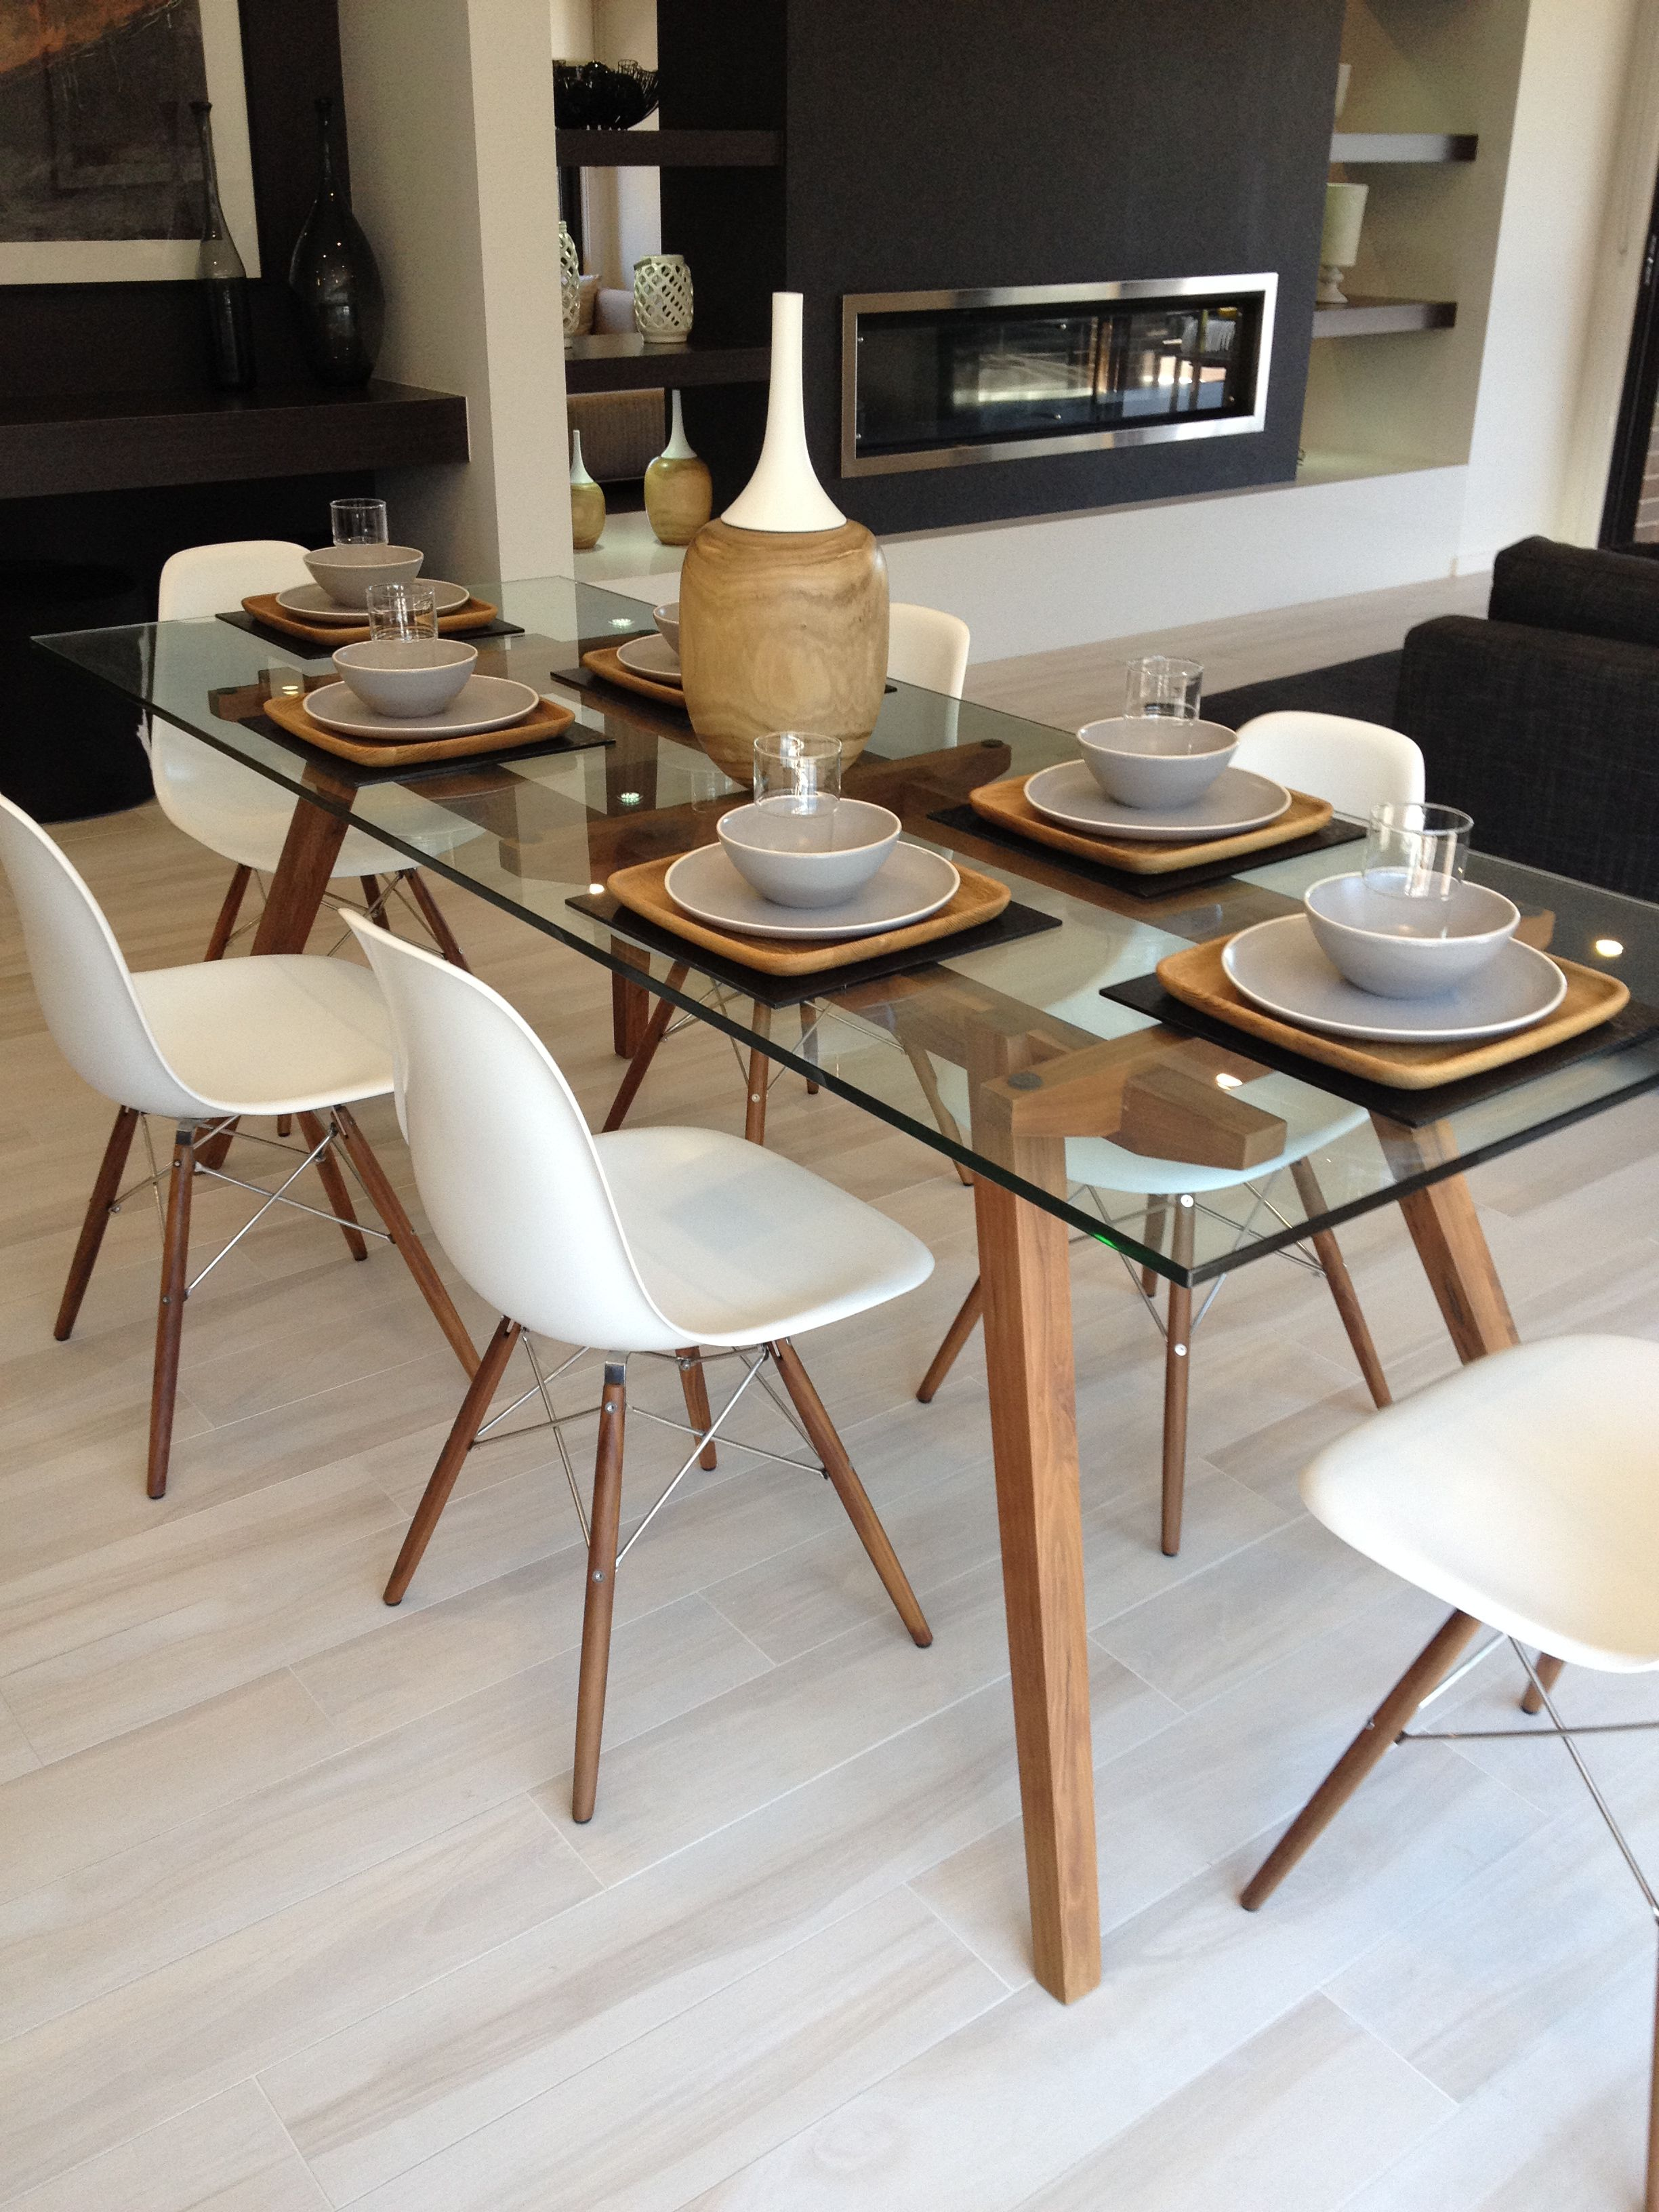 Top 20 Dining Room Table Set Ideas Oformlenie Obedennogo Stola